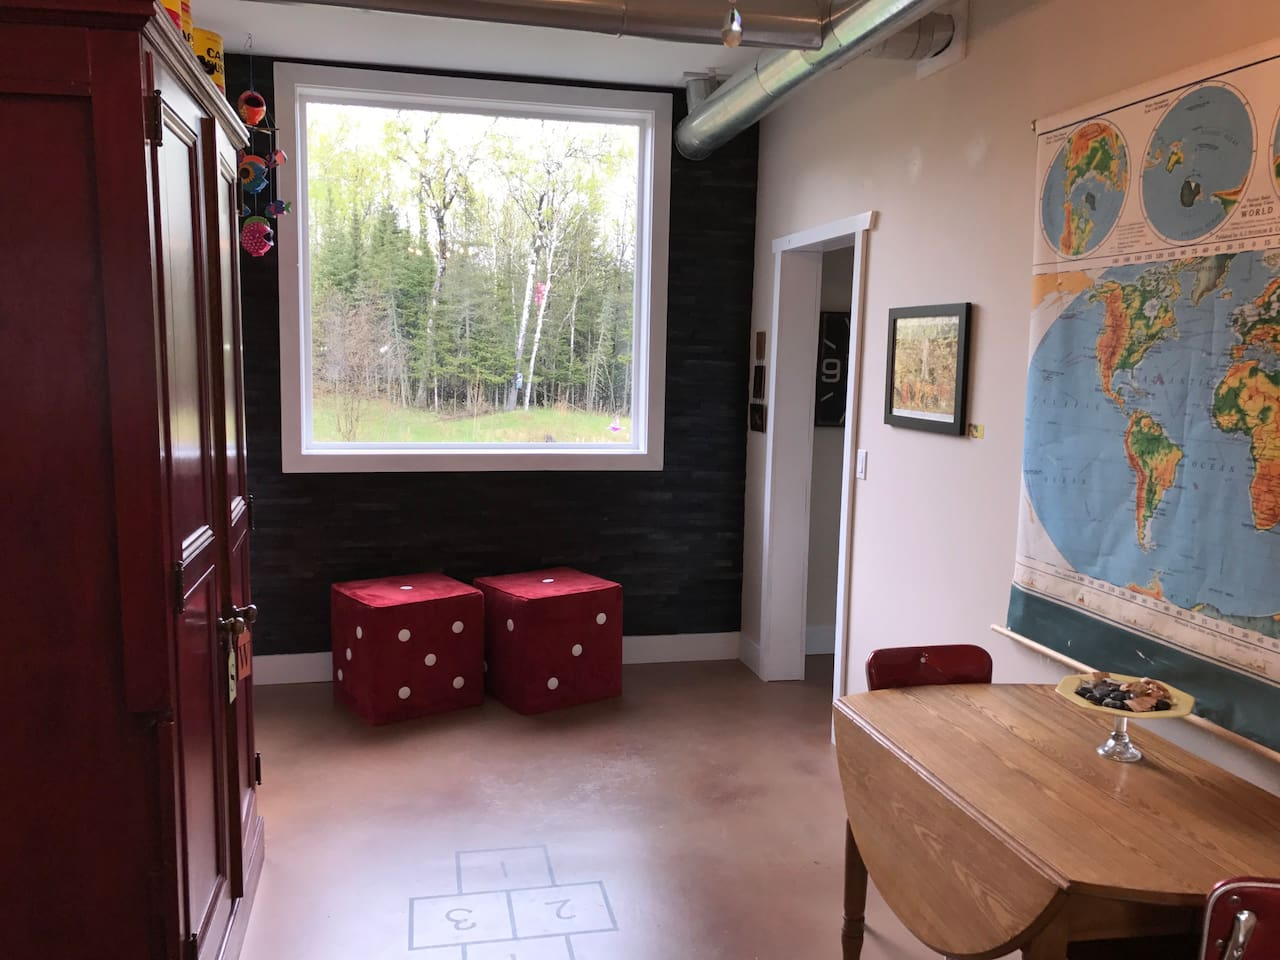 singing waters guest house houses for rent in duluth minnesota singing waters guest house houses for rent in duluth minnesota united states